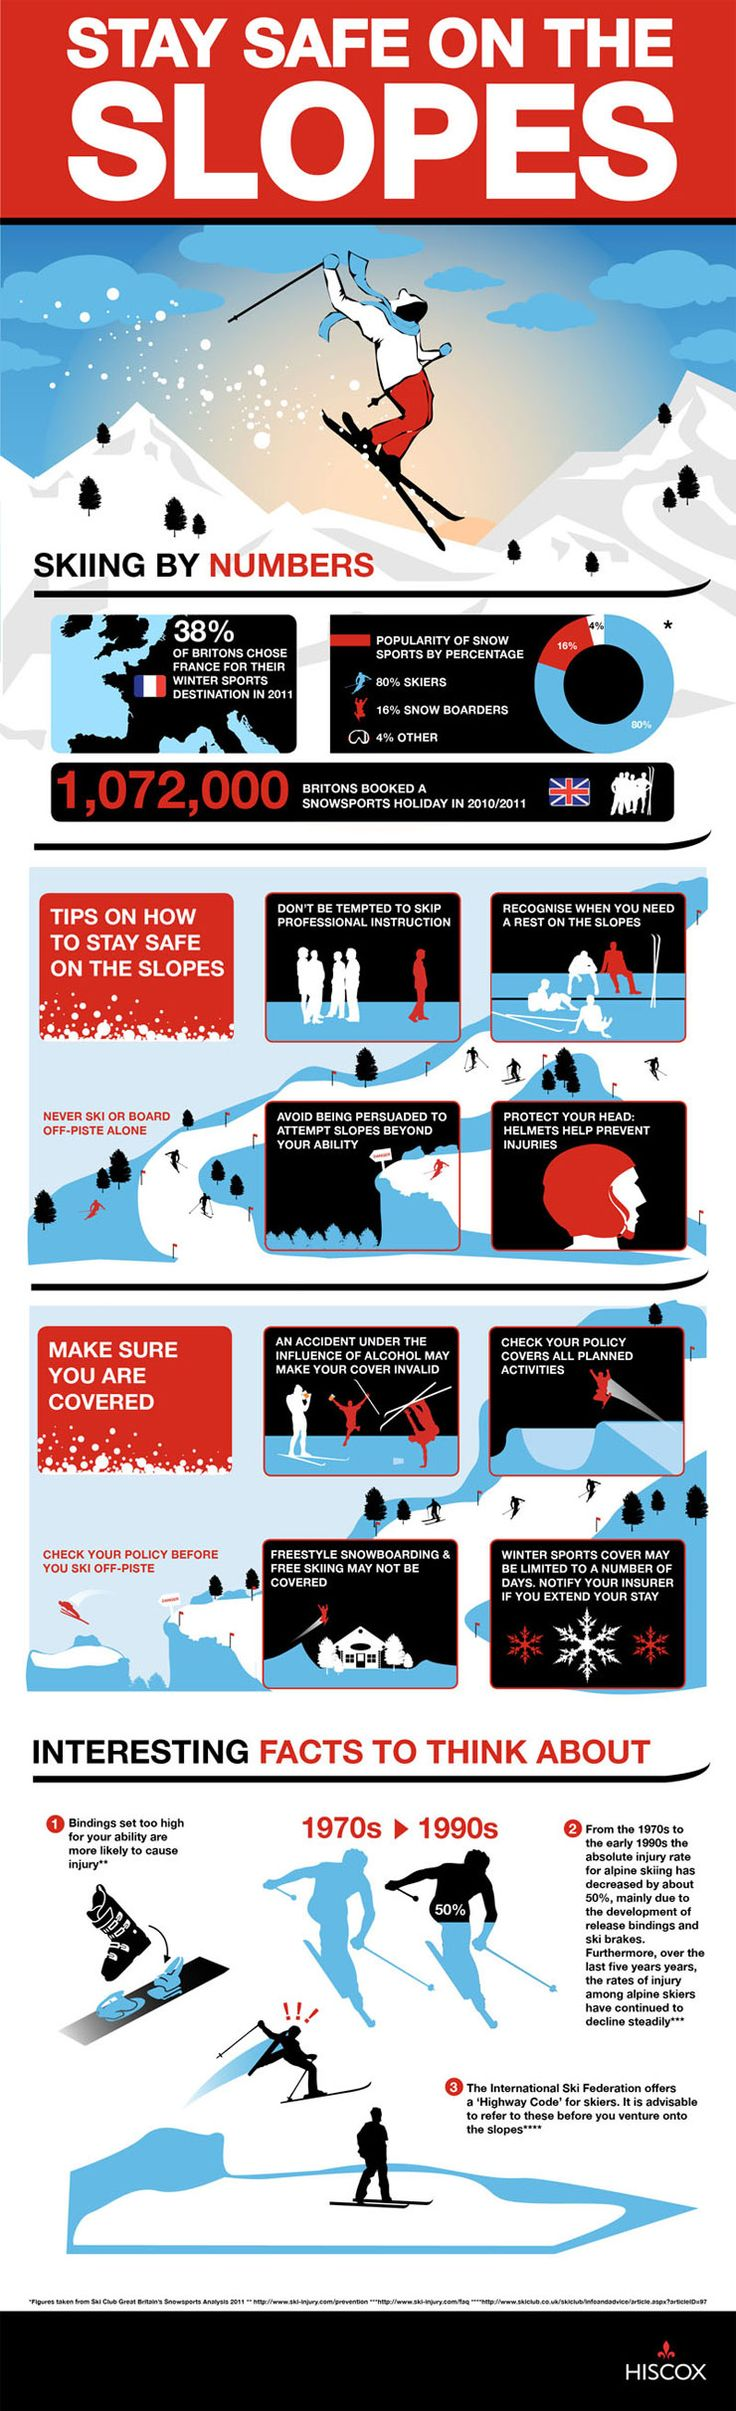 Stay Safe On The Slopes. A few good tips for those planning on a skiing holiday.